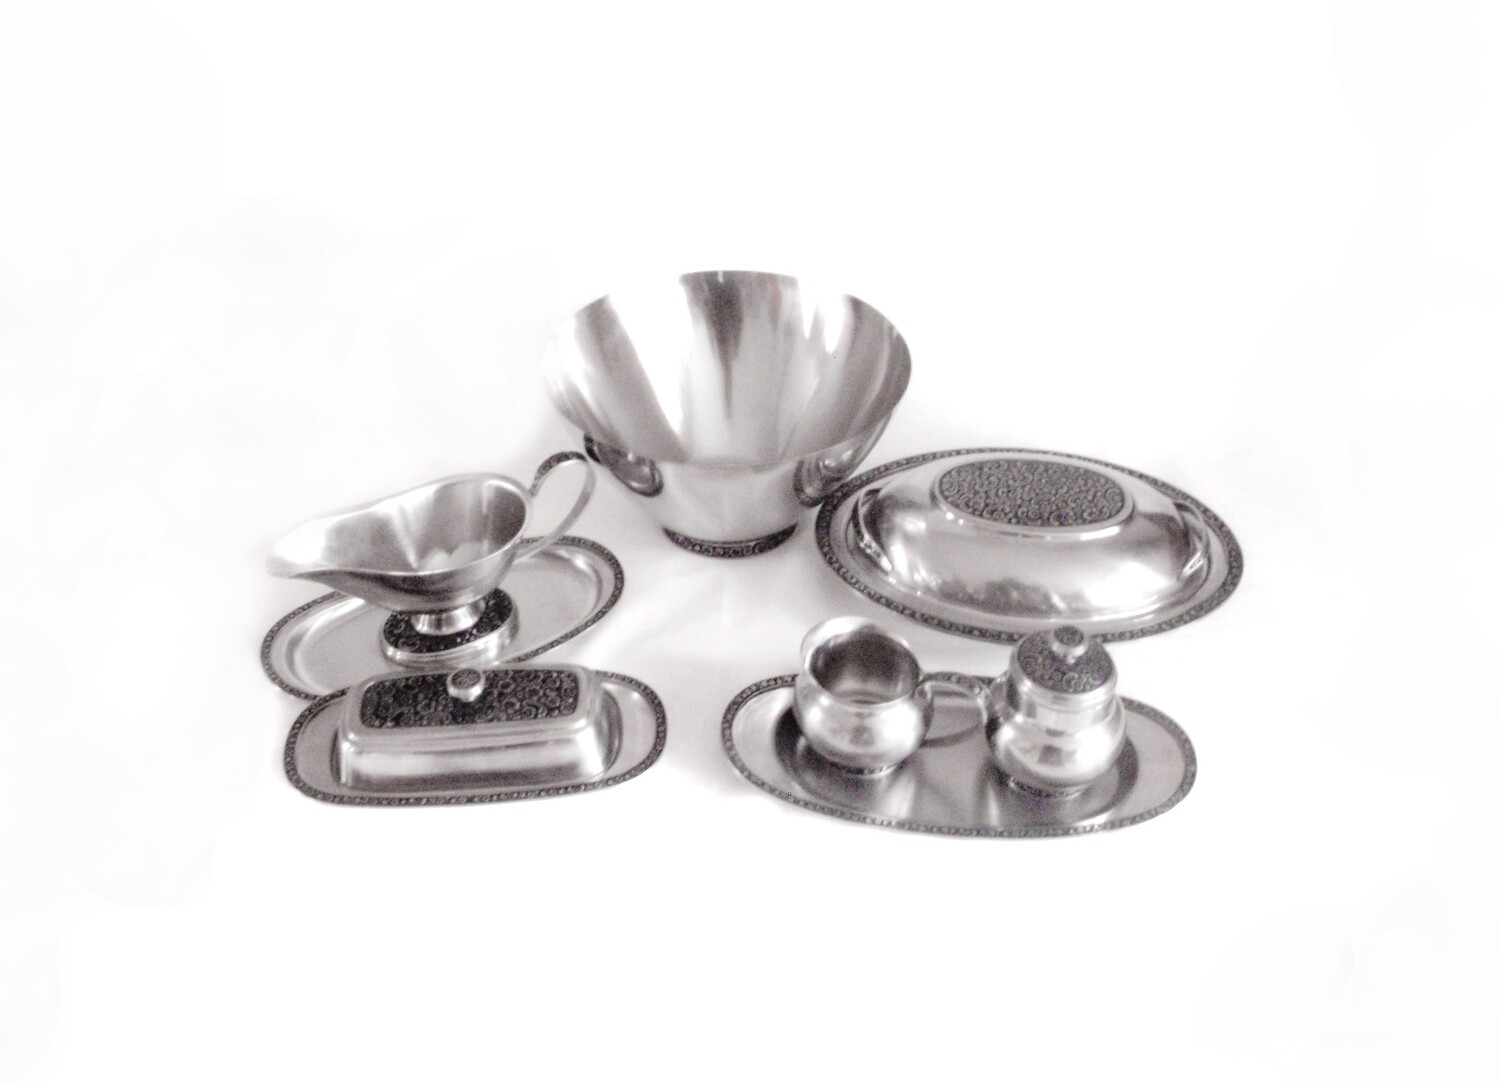 Mid Century Oneida Mediterranea Stainless Steel 9 pc Entertaining Set